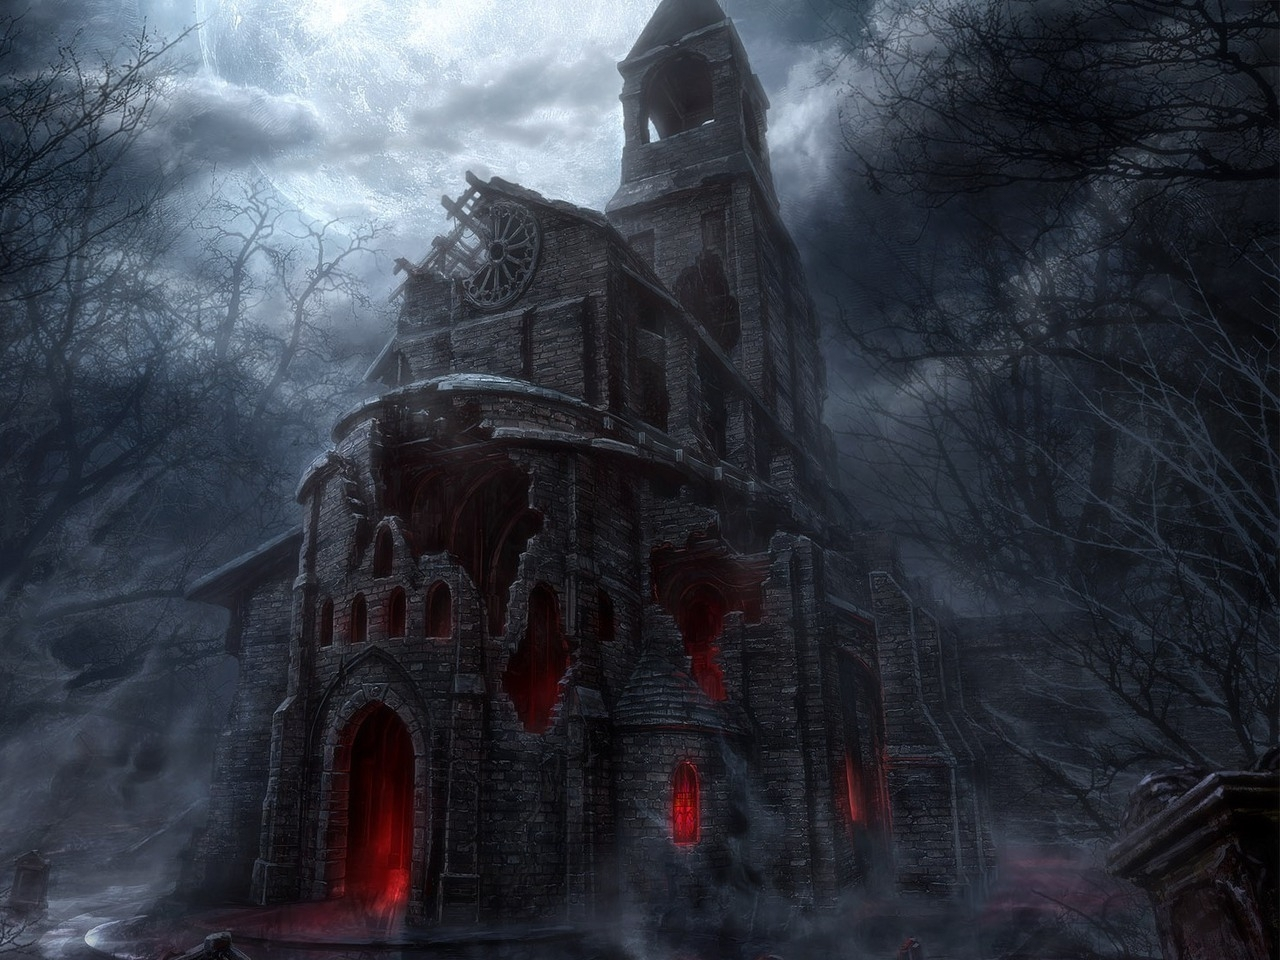 Halloween images Haunted House HD wallpaper and background photos 1280x960